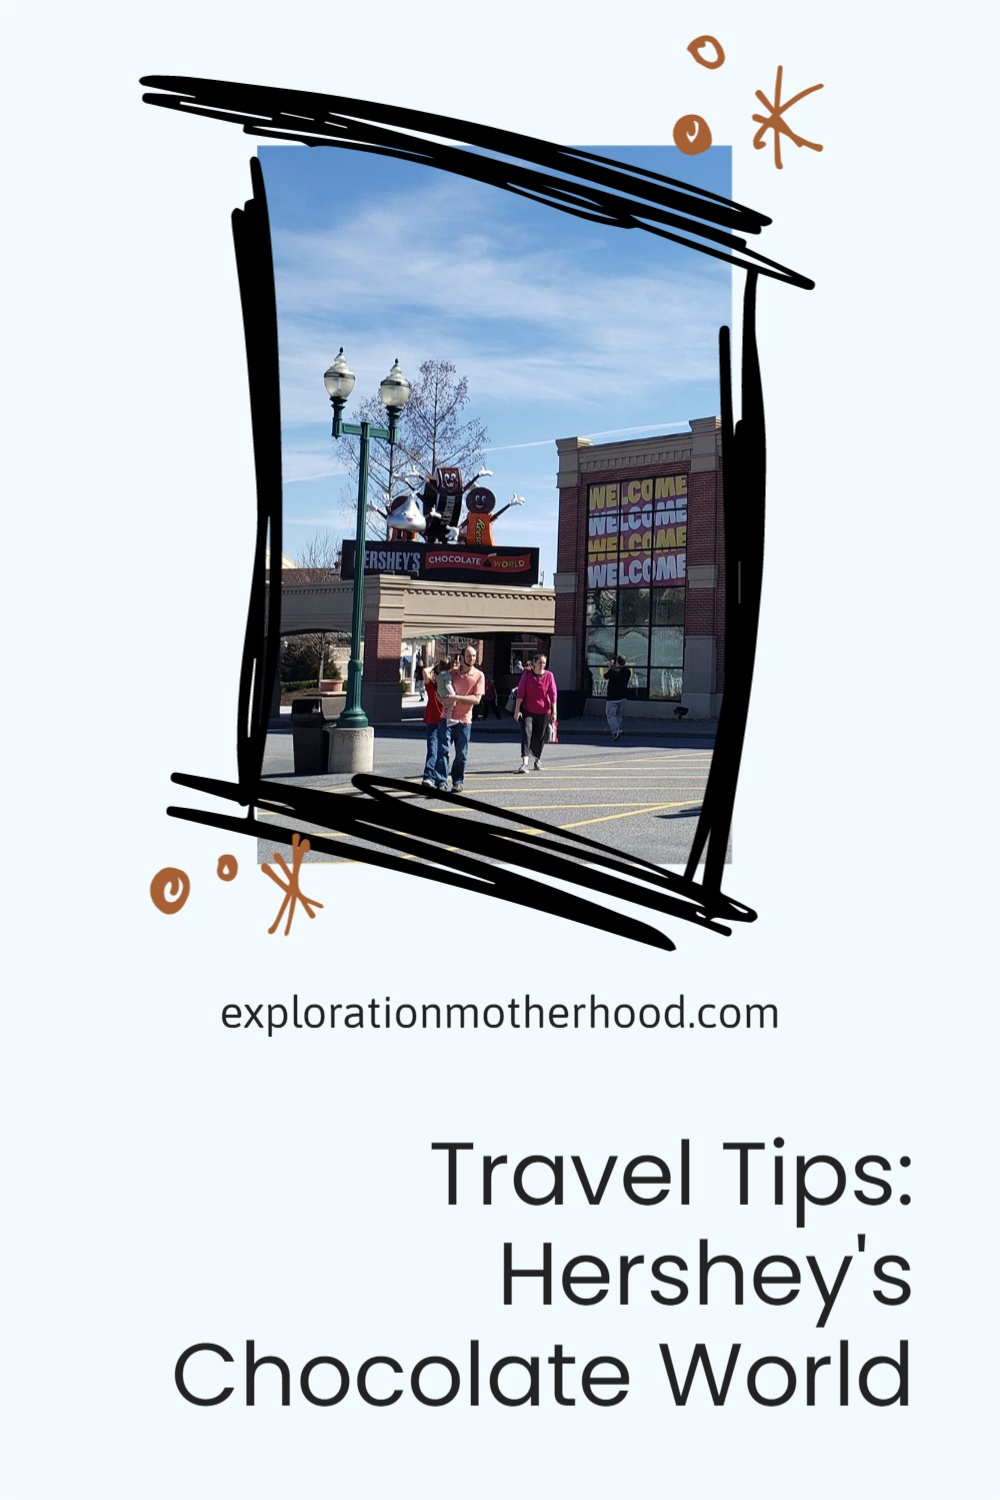 Everything You NEED TO KNOW about Hershey\'s Chocolate World in Hershey, PA